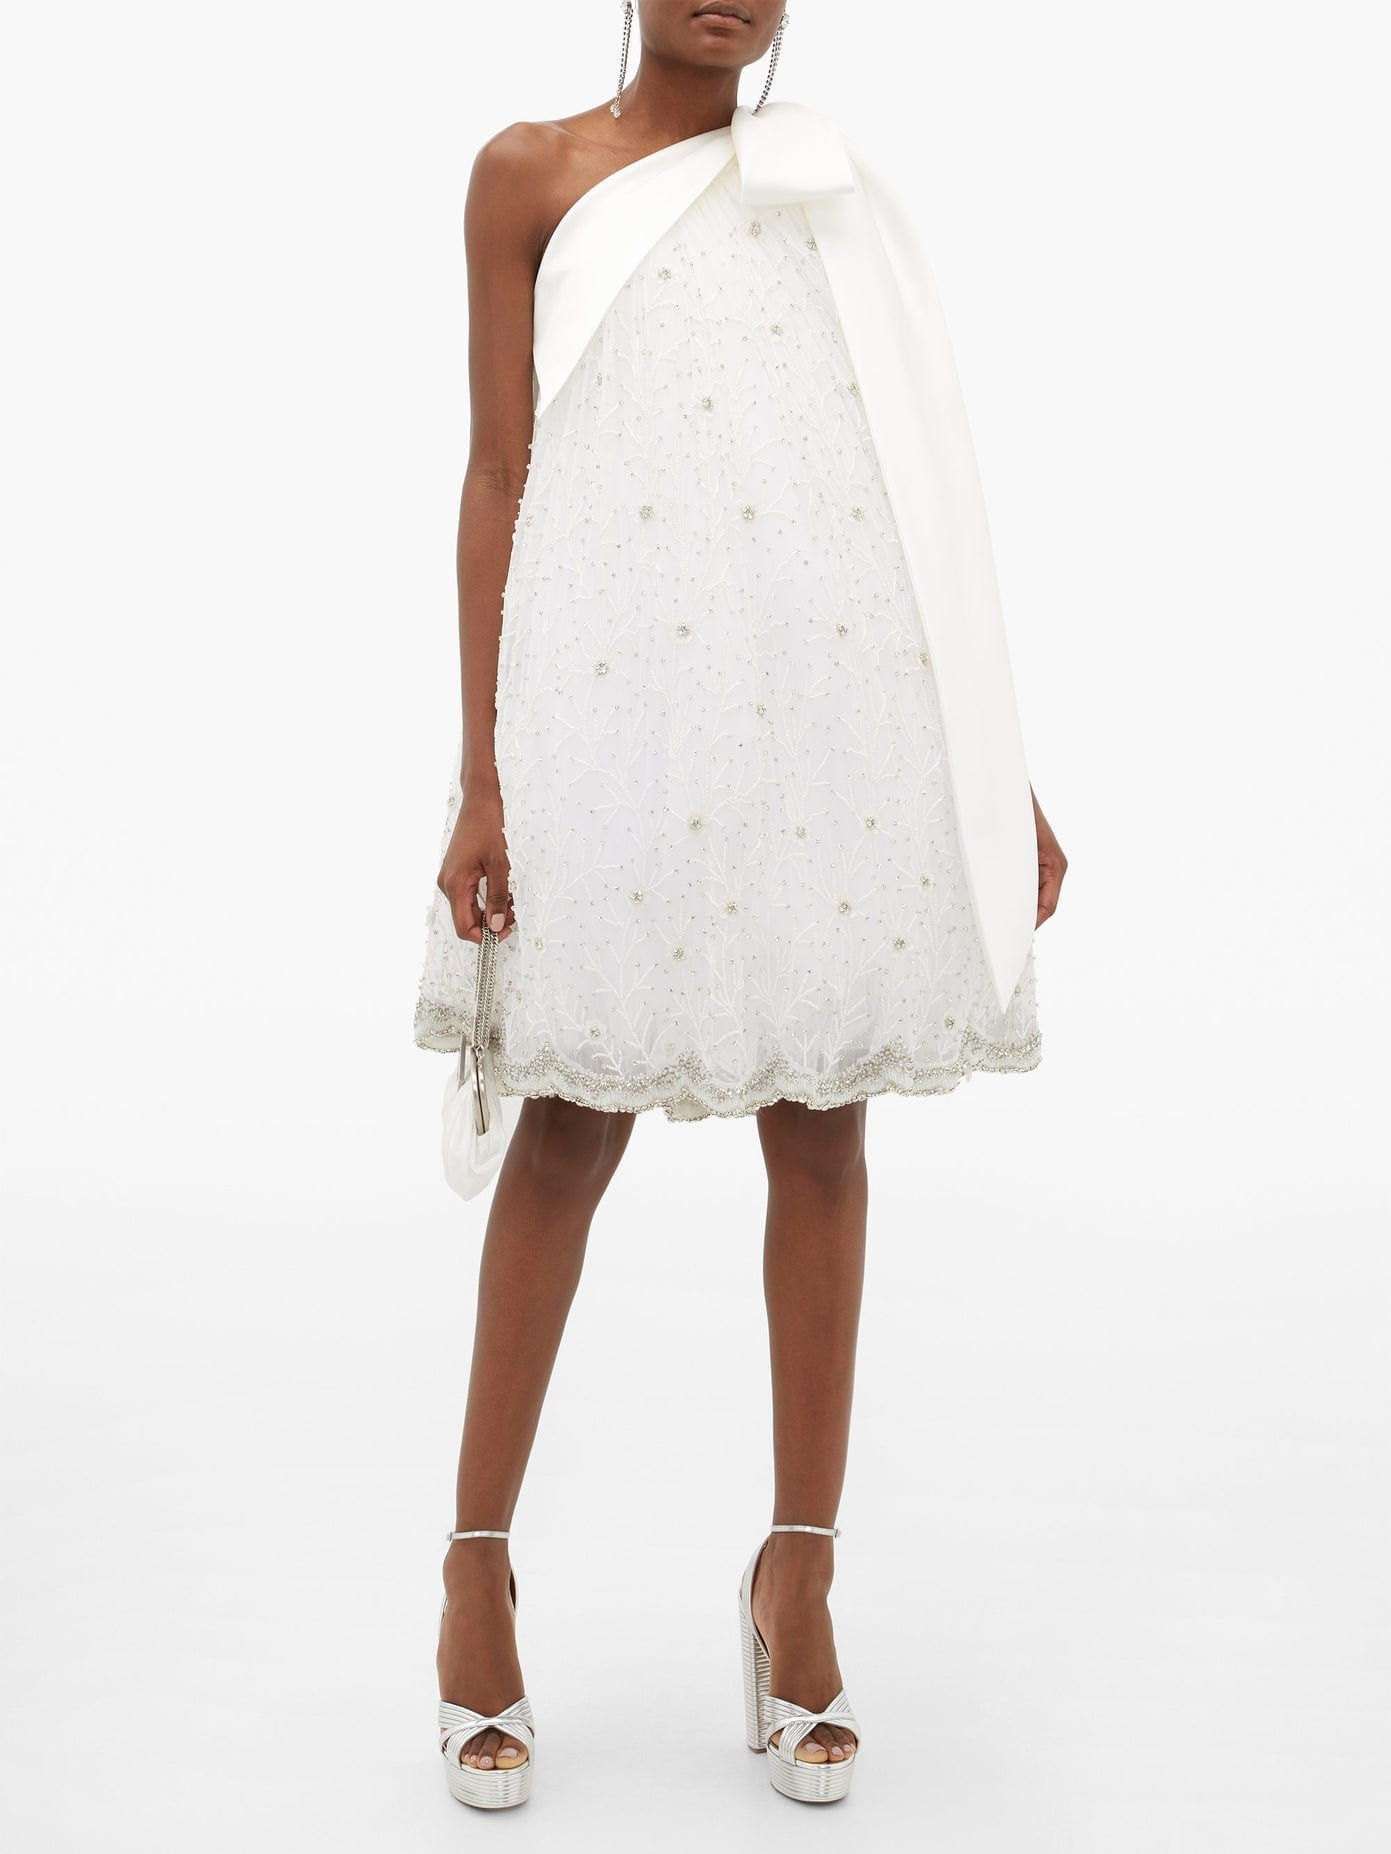 RICHARD QUINN One-shoulder Crystal-embellished Tulle Dress